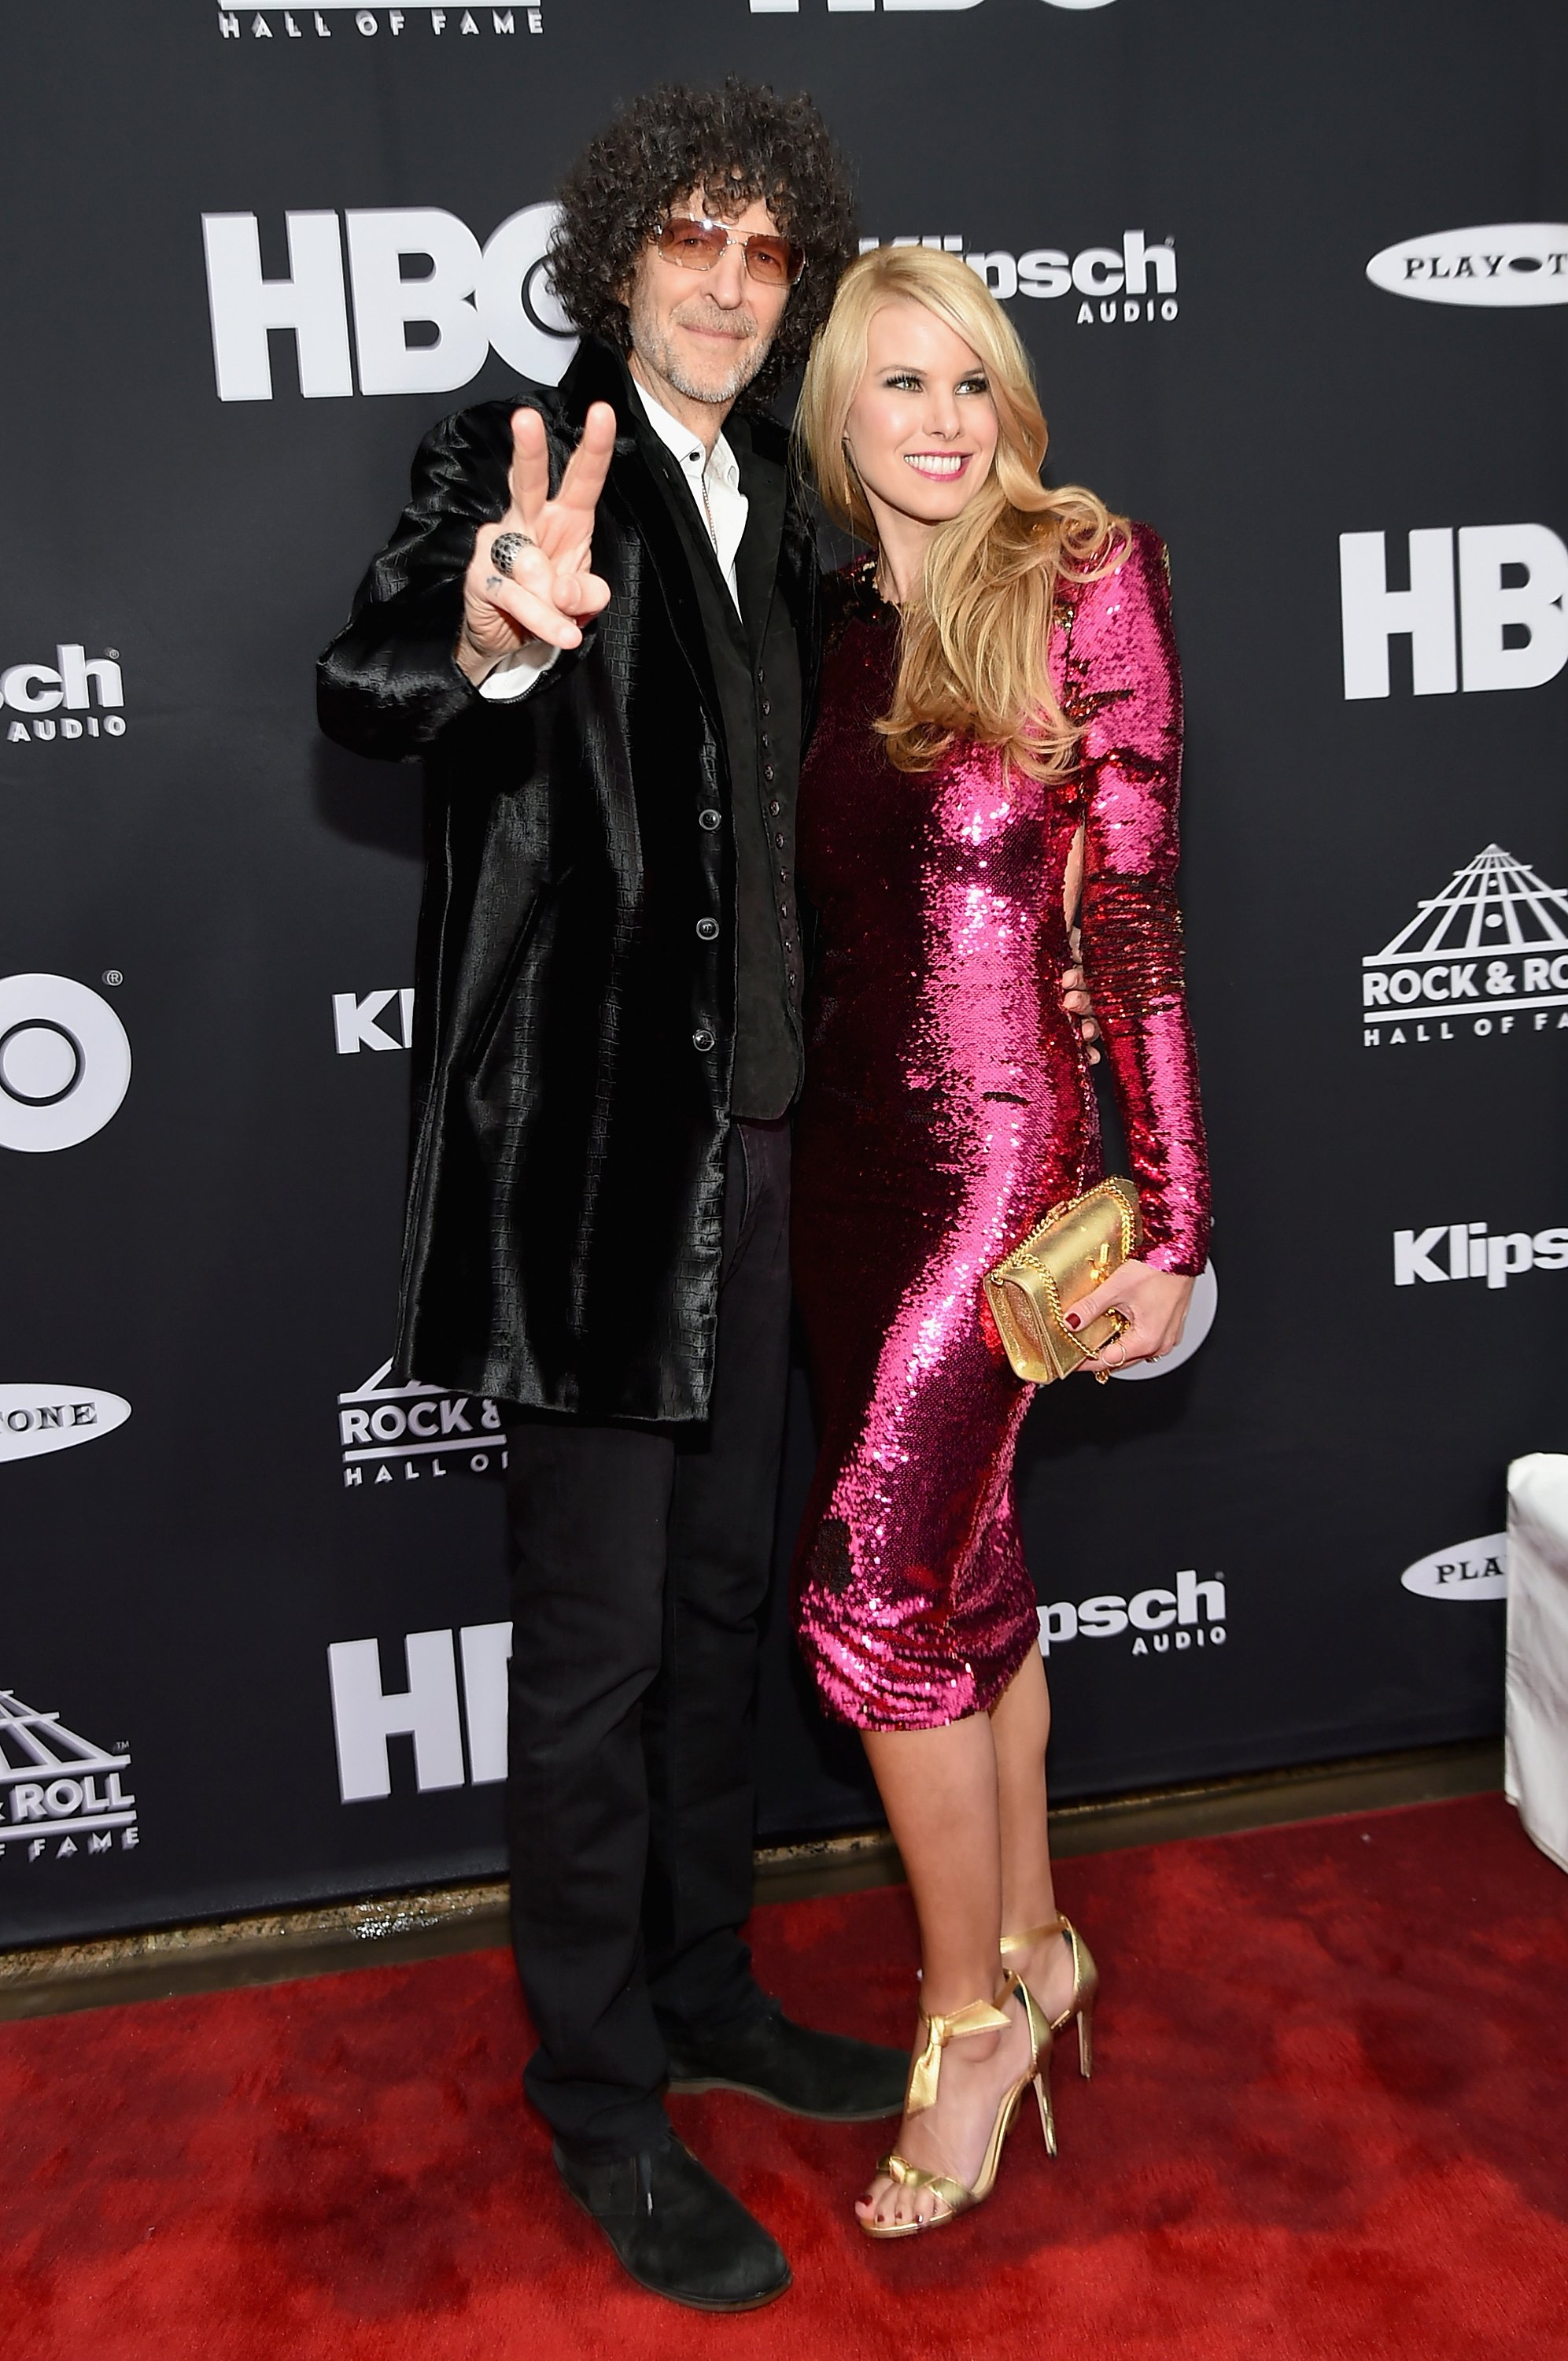 Howard Stern and Beth Ostrosky Stern attend the 33rd Annual Rock & Roll Hall of Fame Induction Ceremony at Public Auditorium on April 14, 2018  | Photo: GettyImages